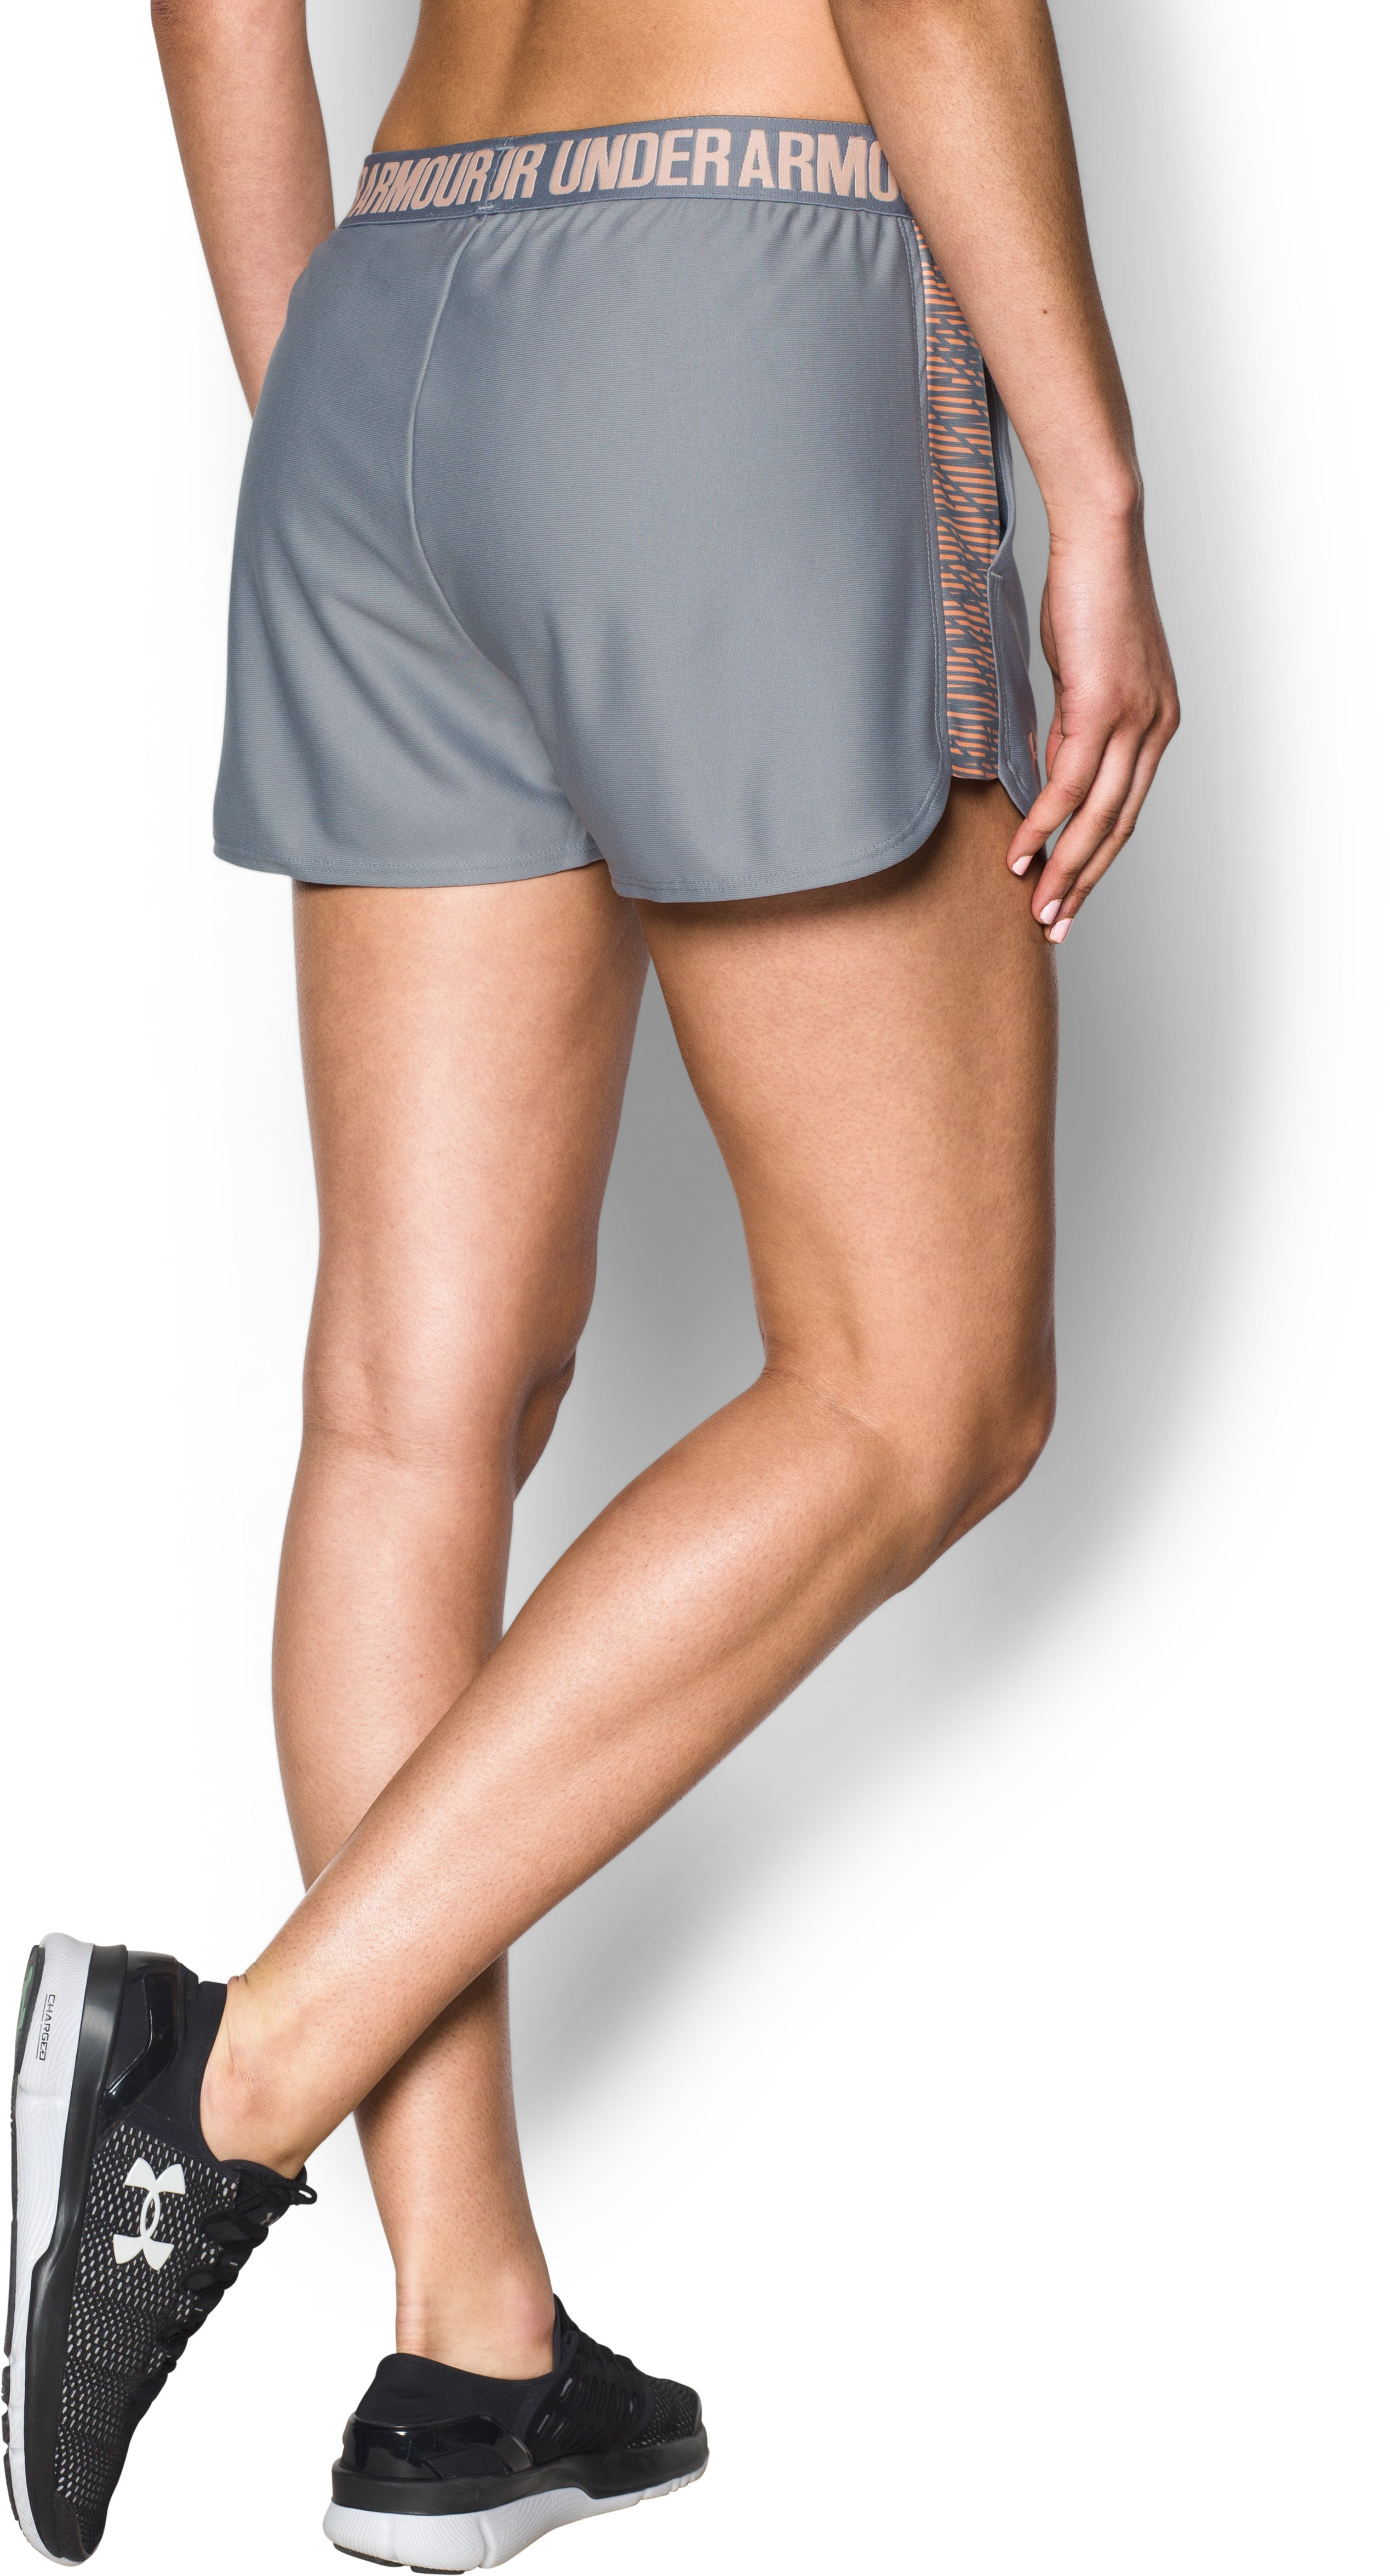 Women's UA Play Up Shorts 2.0 - Printed, Steel, undefined